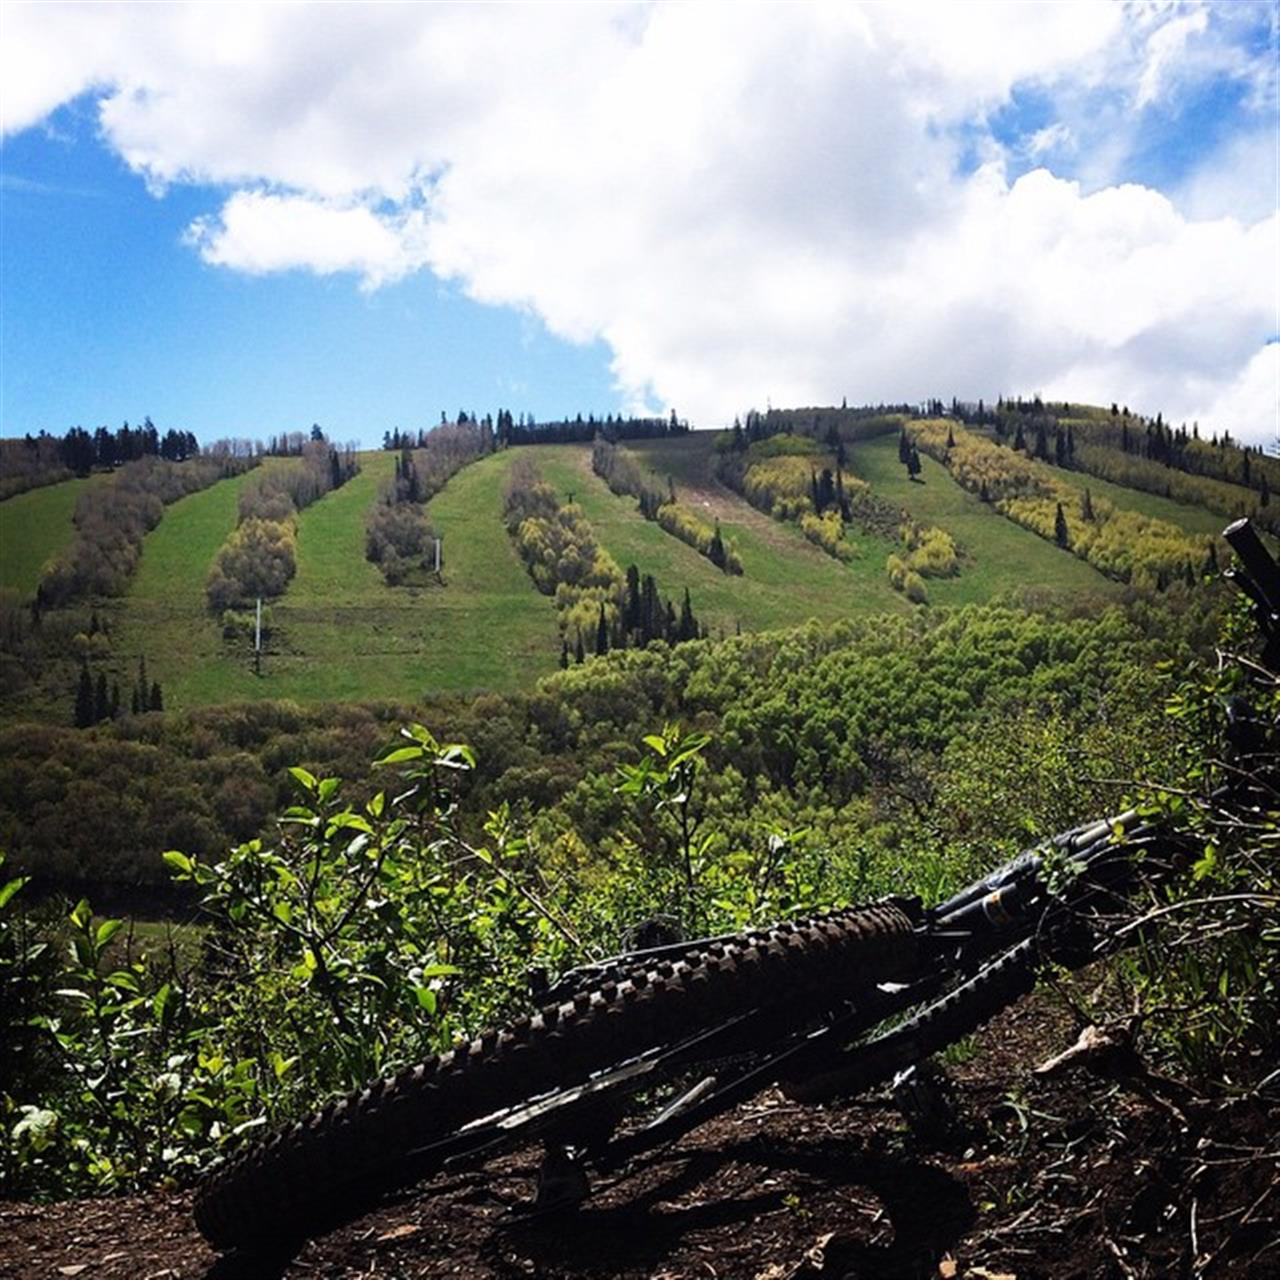 This rain has been treating the dirt well! The view from our ride today up Armstrong! #parkcity #slc #mtb #leadingrelocal #mountainbike @pcski